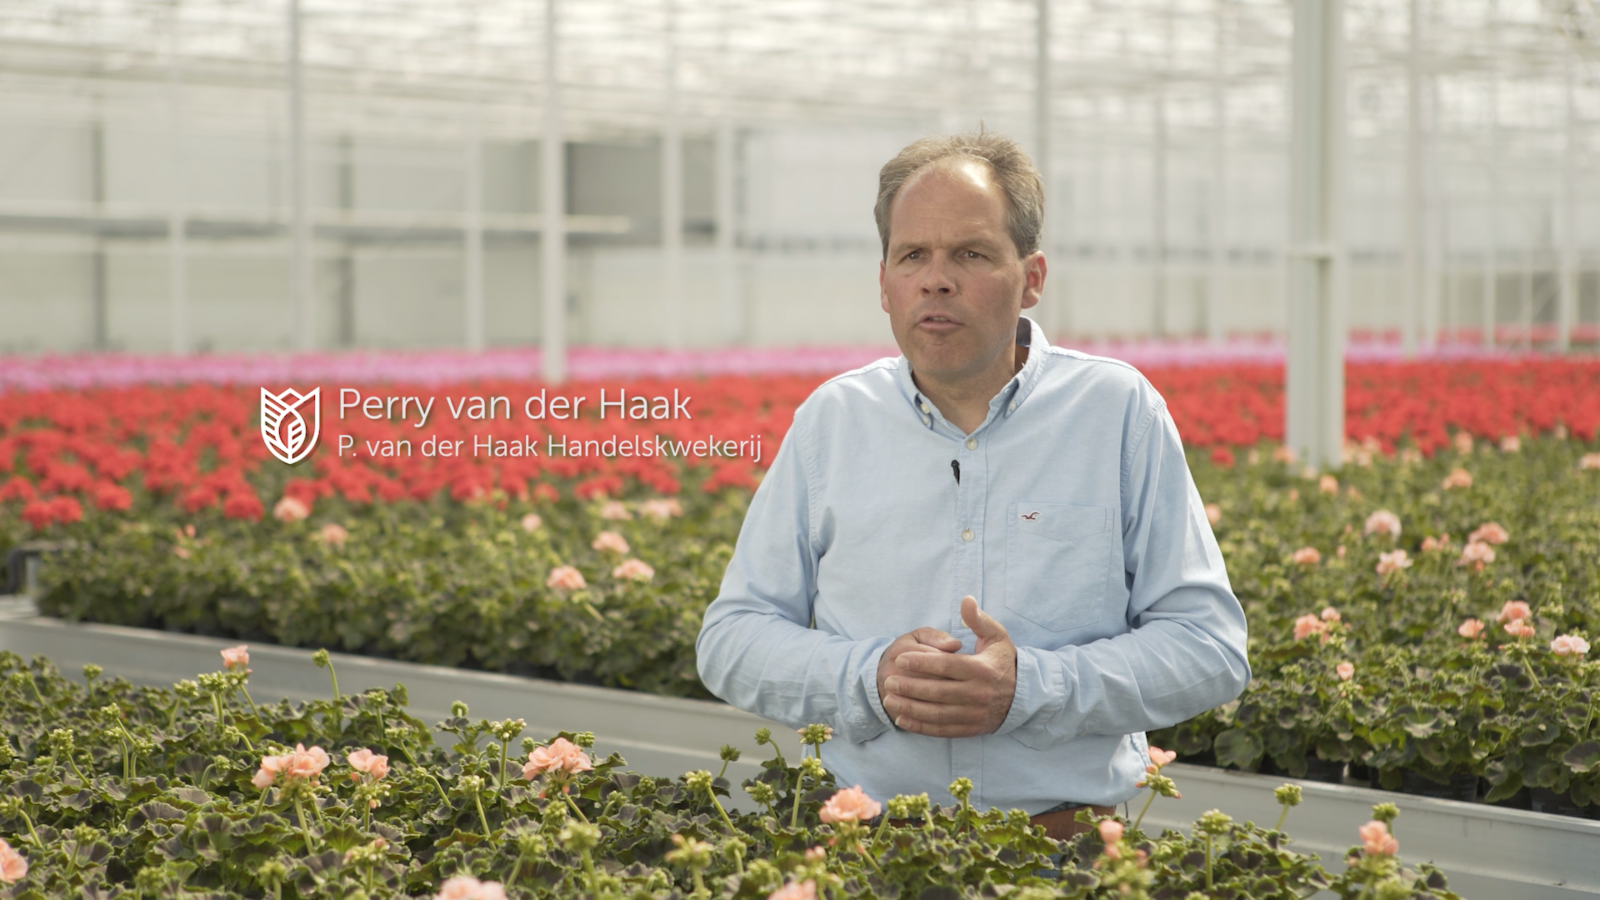 Perry van der Haak: automation at the highest level